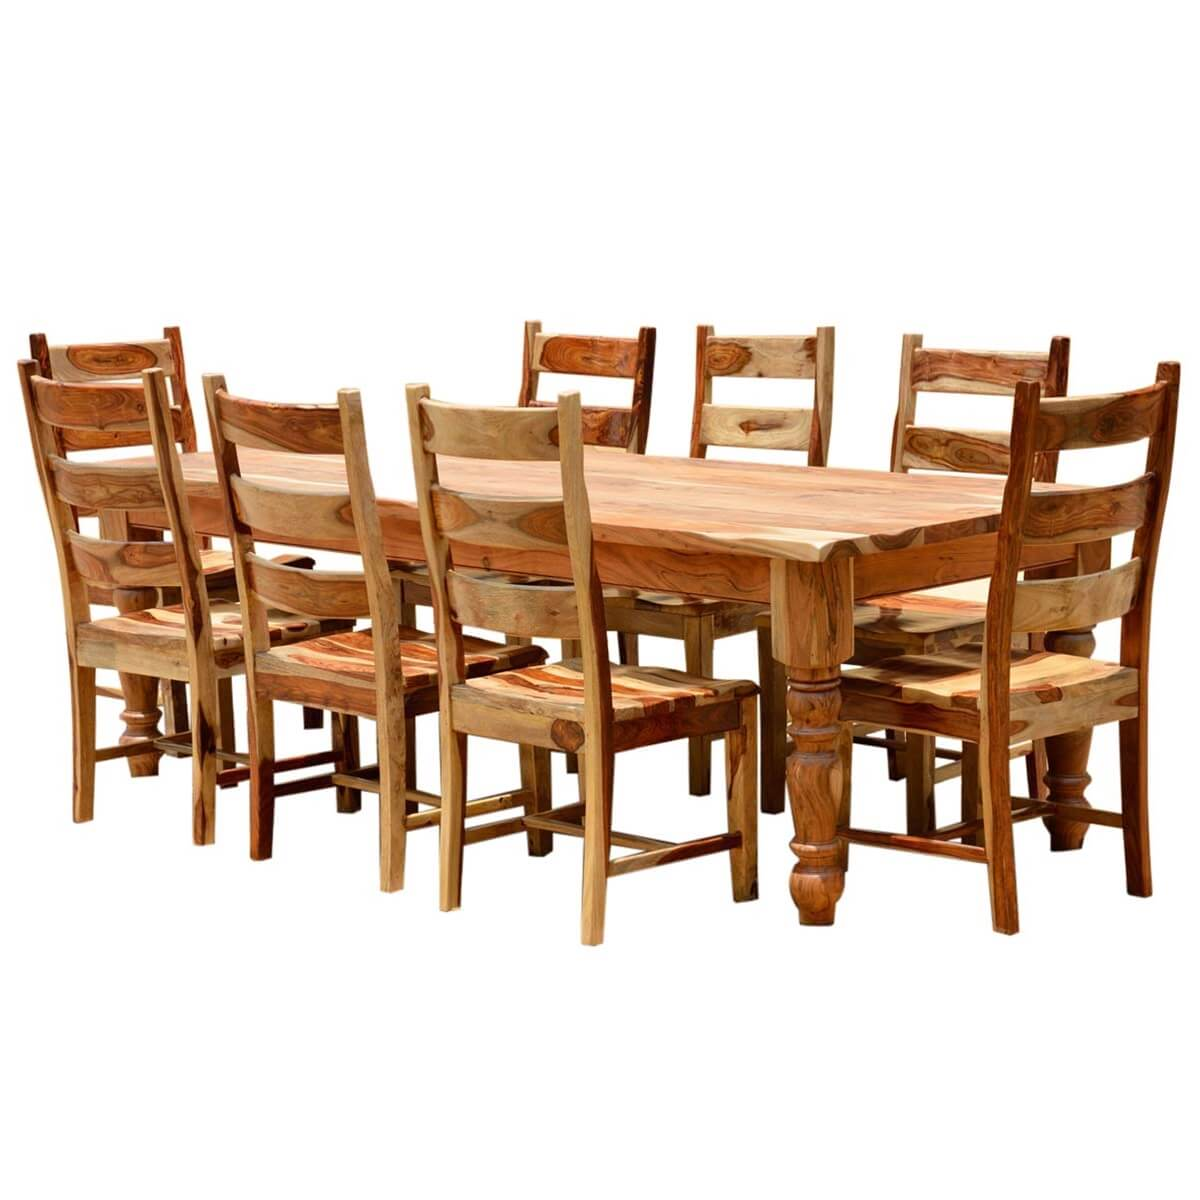 Dining Room Dining Table And Chair Sets Rustic Solid Wood Farmhouse